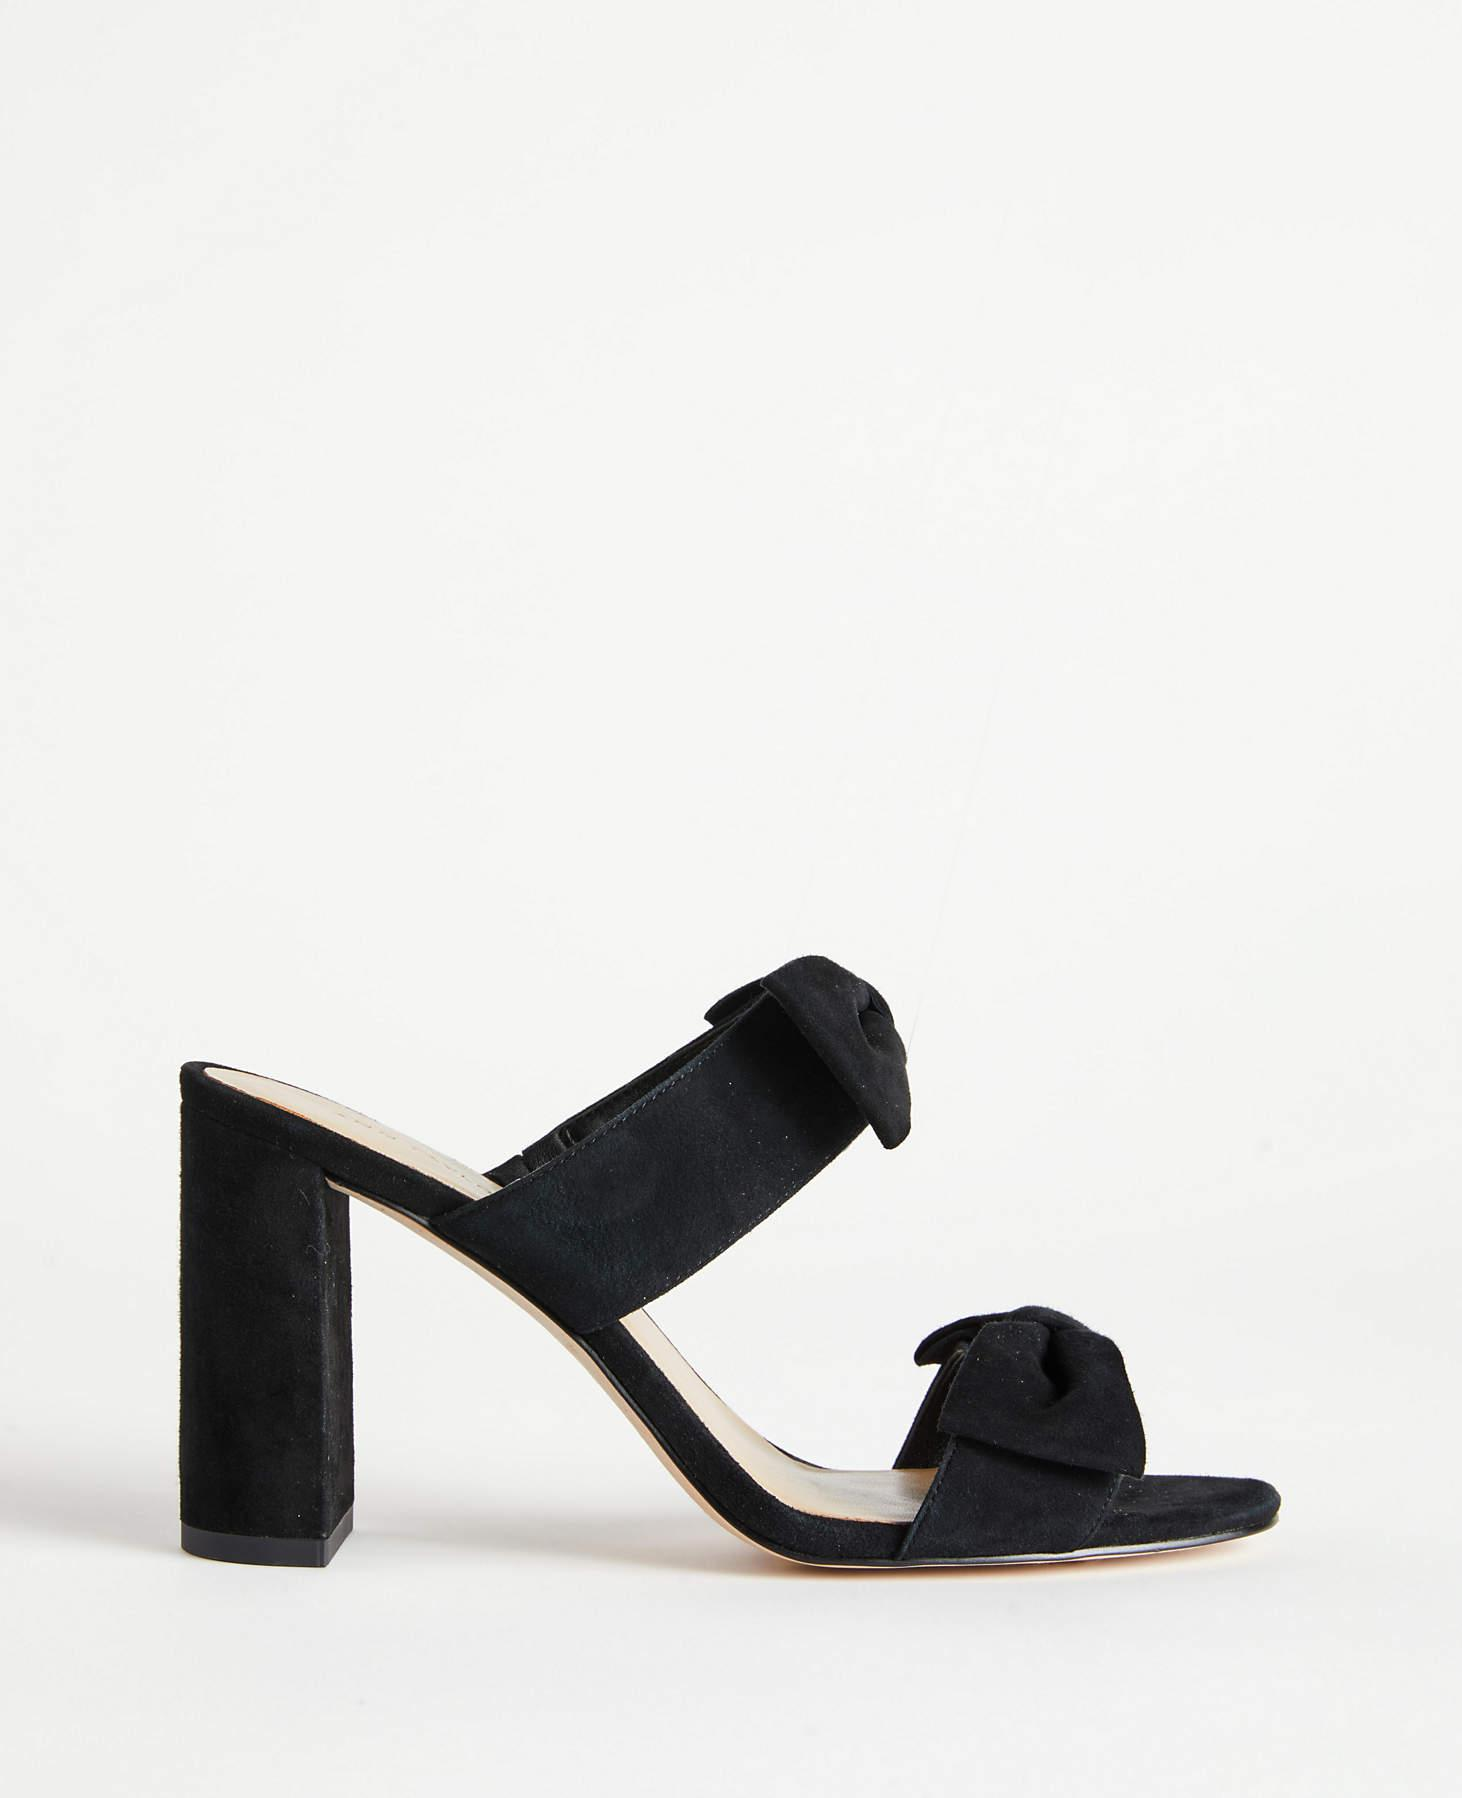 0cf0ac606d Ann Taylor Janie Suede Bow Heeled Sandals in Black - Lyst